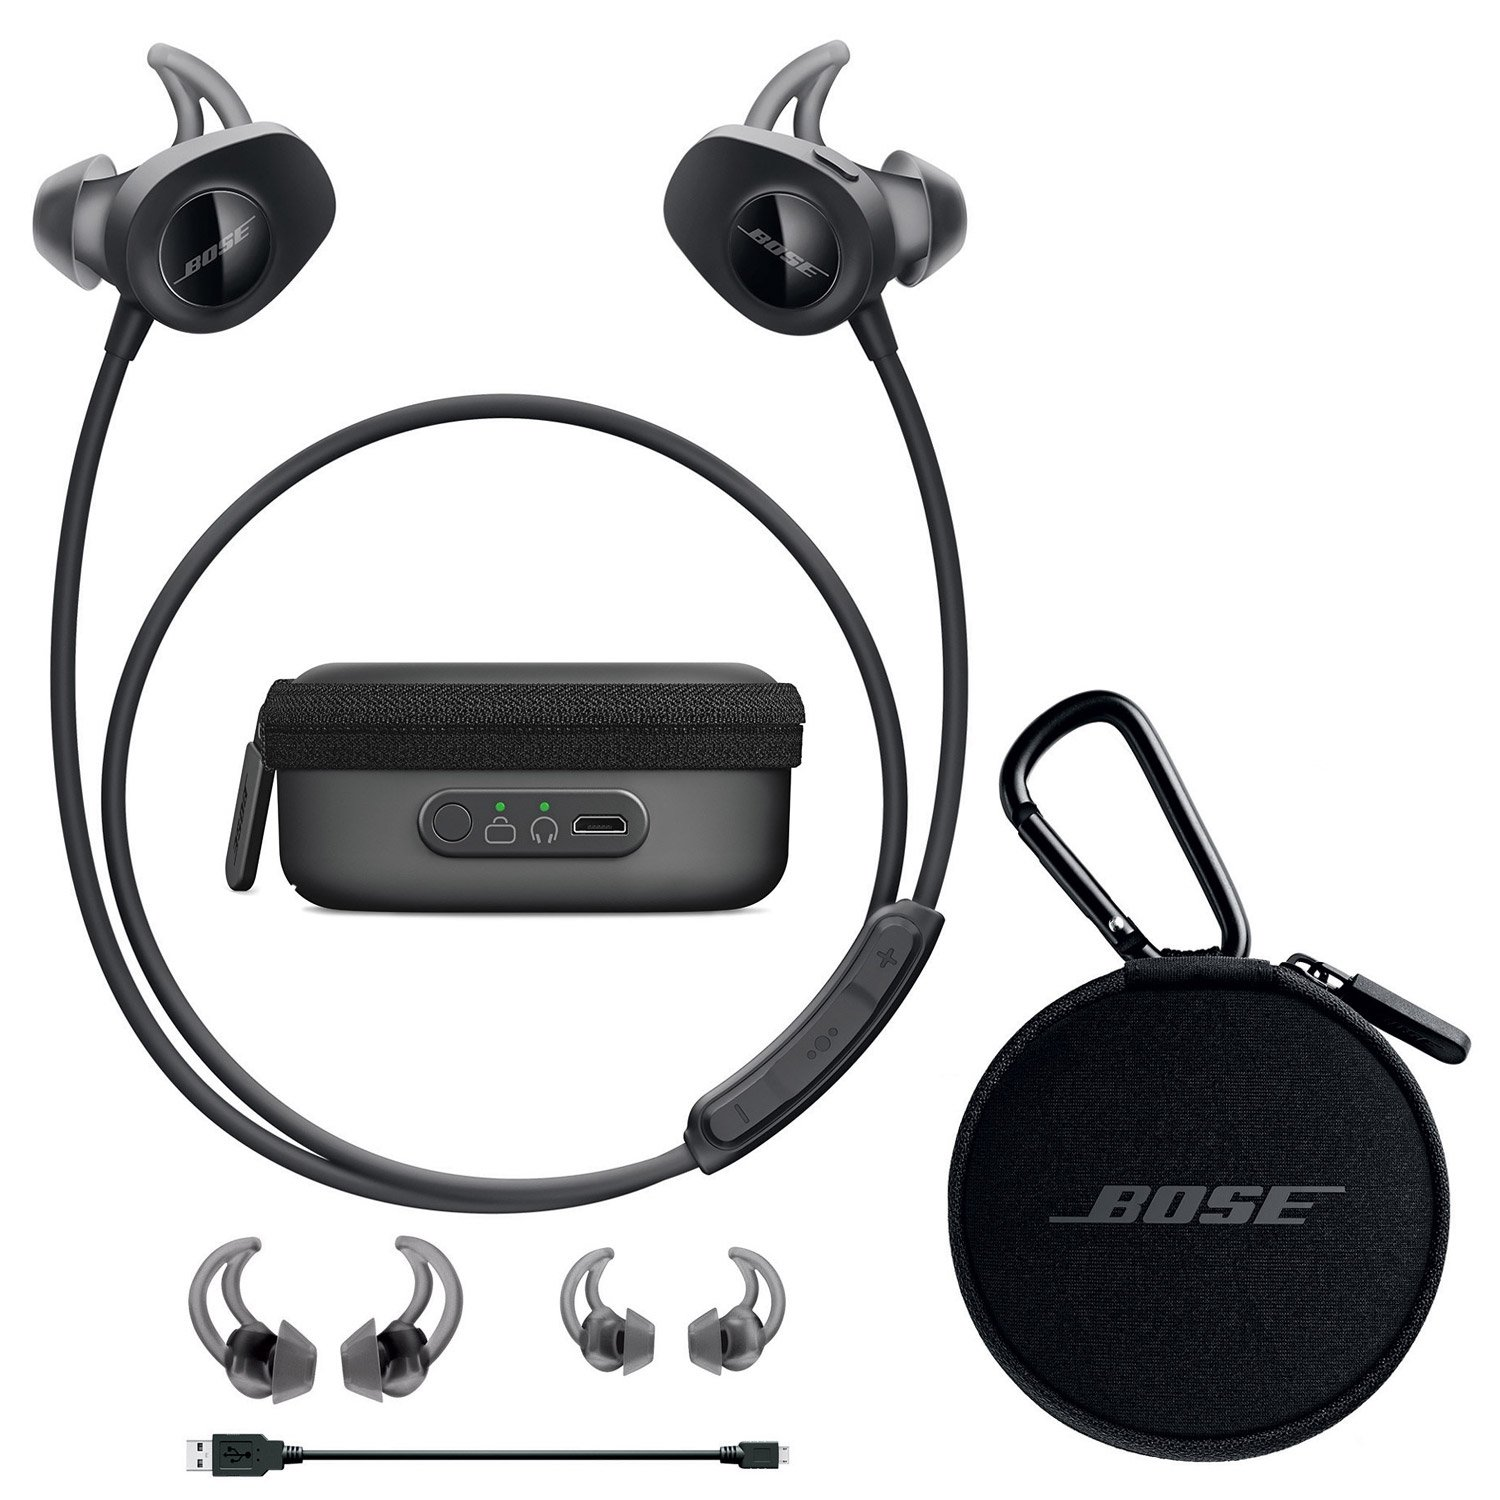 Bose SoundSport Wireless In-Ear Headphones - Black & Charging Case - Bundle by Bose